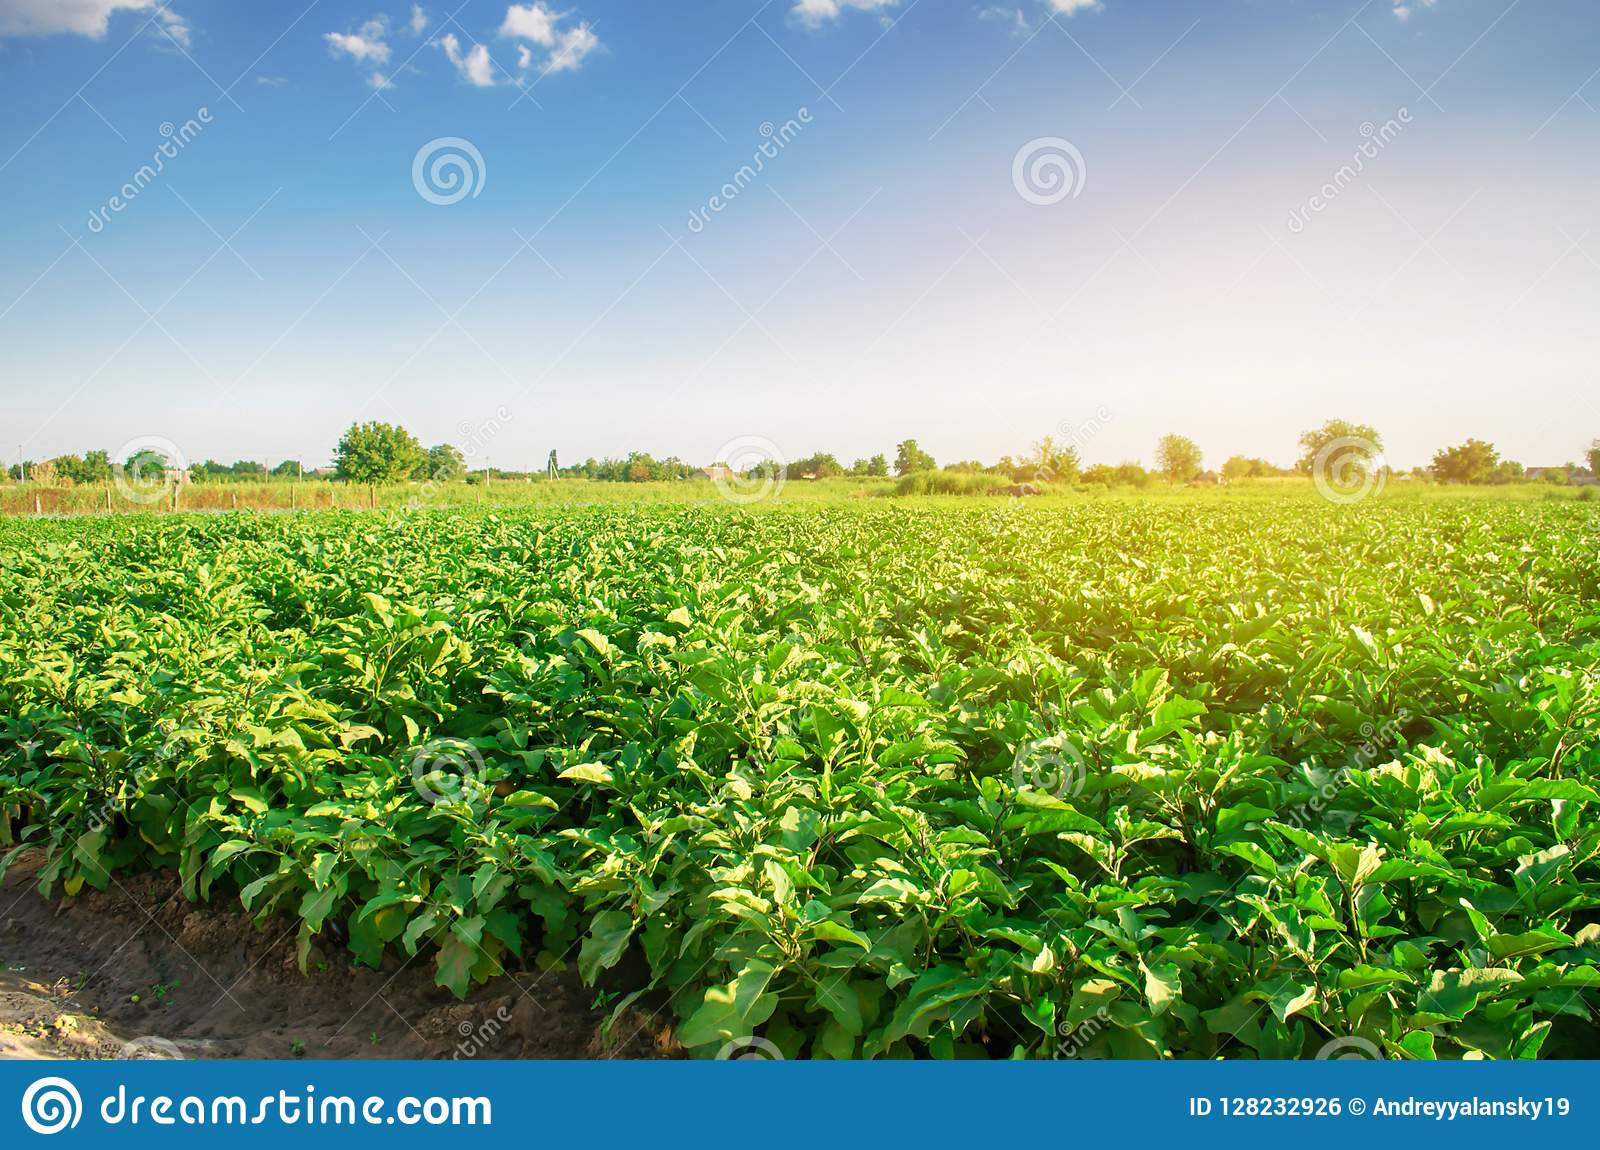 Eggplants grow in the field. vegetable rows. Agriculture, vegetables, organic agricultural products, agro-industry. farmlands. aub